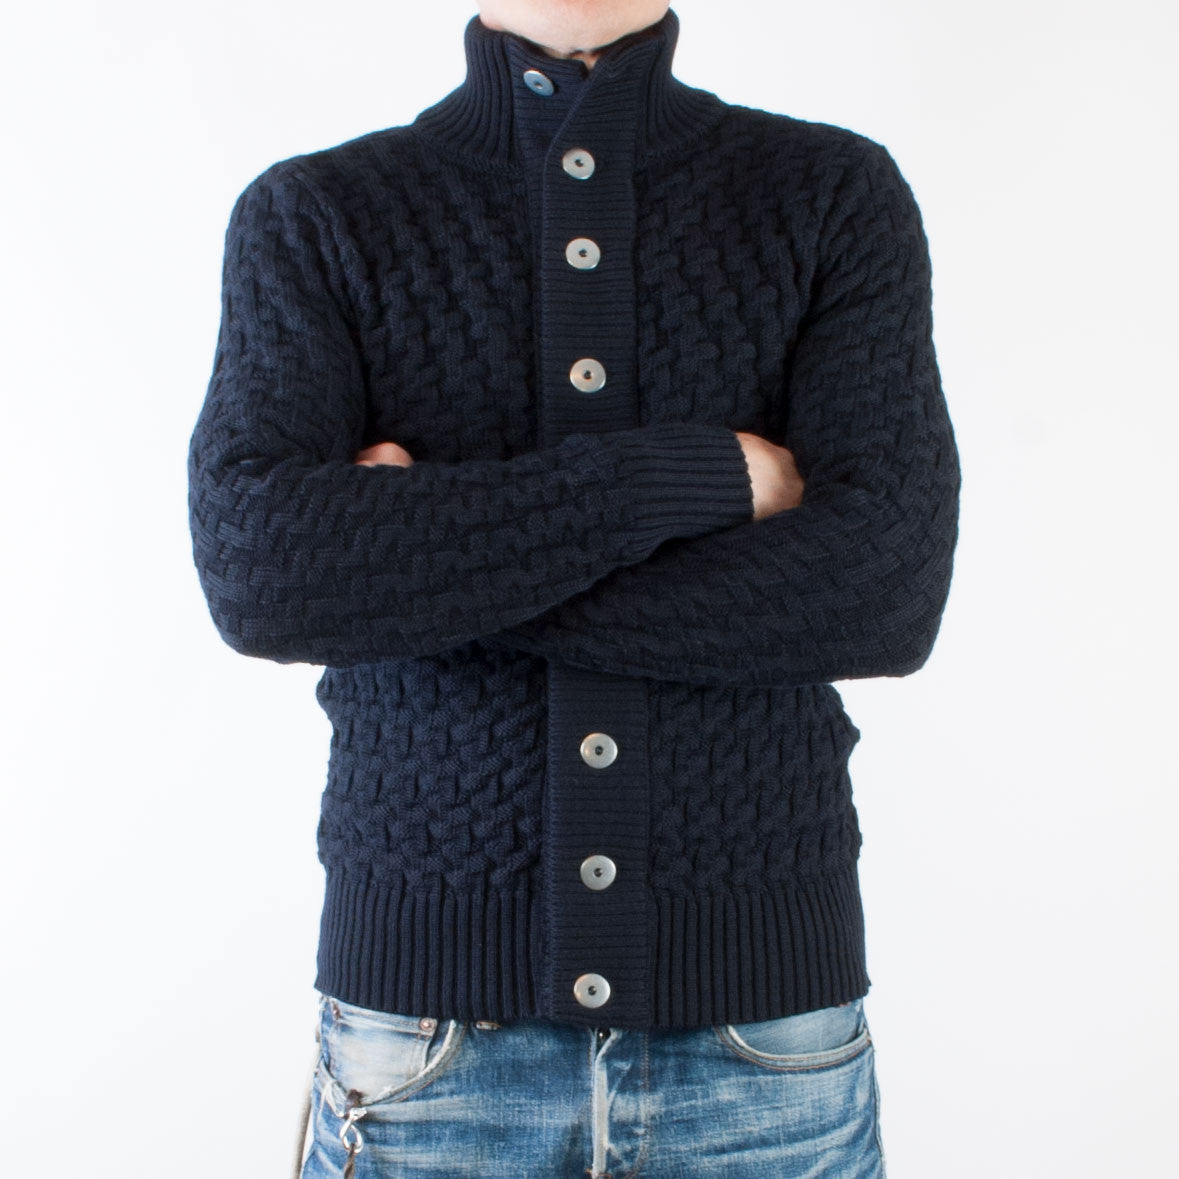 S.N.S. Herning Stark Cardigan (Navy blue) - Brund - 2